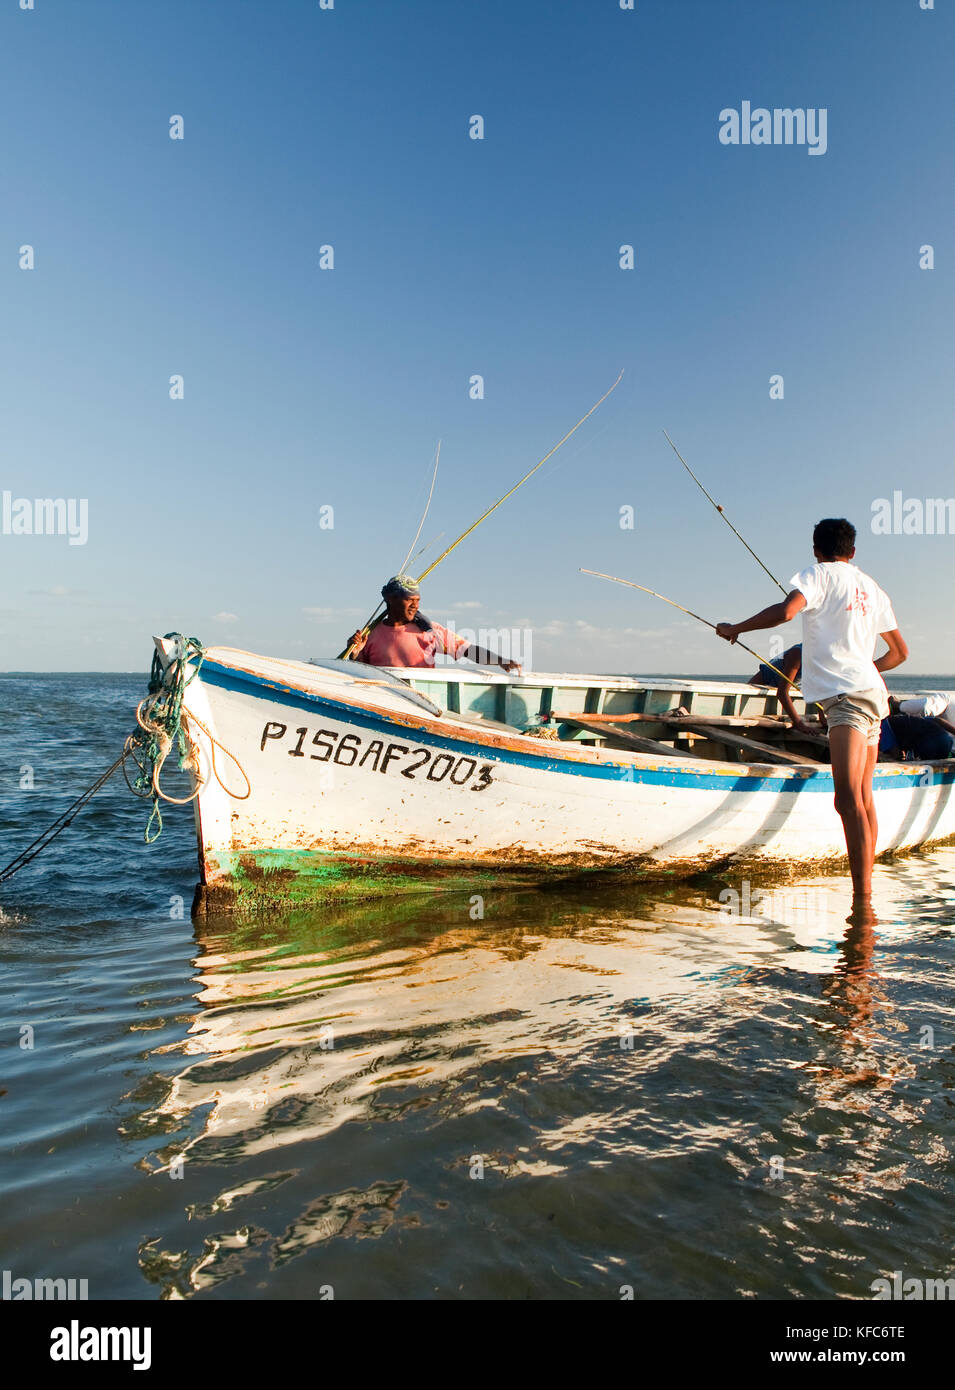 MAURITIUS, fishermen pull their rods out of a boat after a day of fishing, Bel Ombre, Indian Ocean - Stock Image